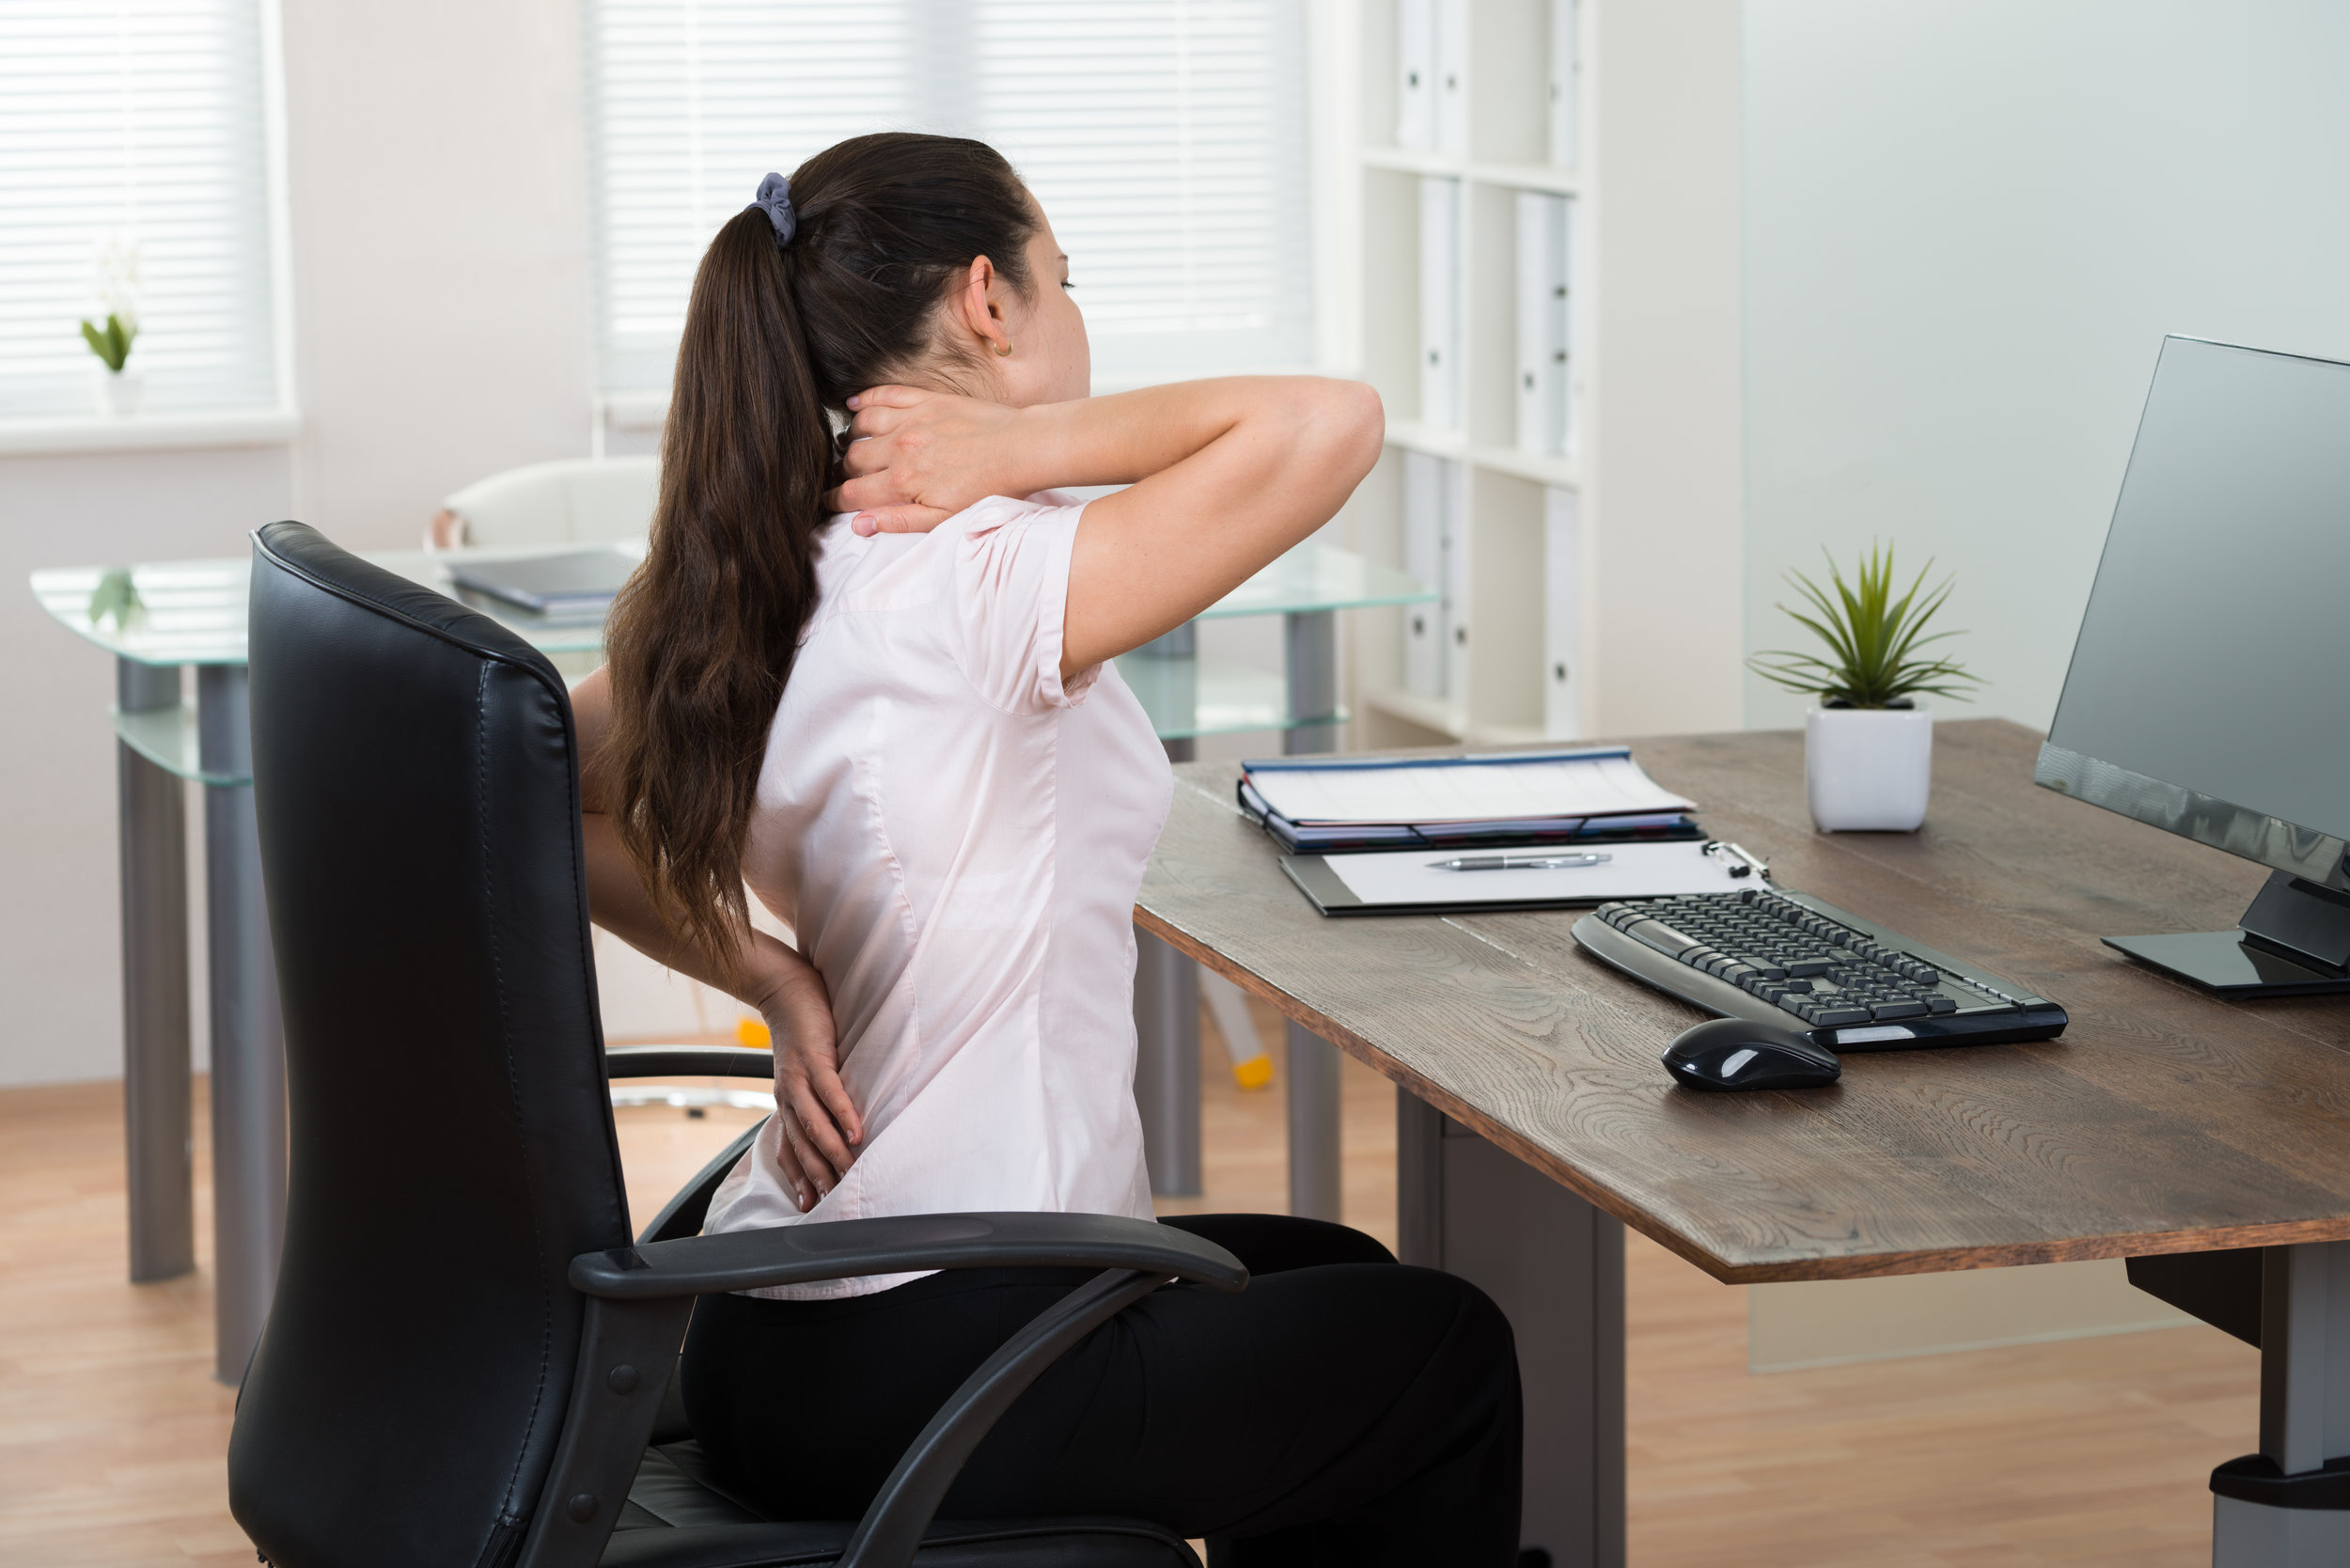 - We all spend hours interacting with our technology, both for work and for leisure, but the reality is that we rarely stop to think about the negative impacts of our posture and workstation set up until something starts to hurt.